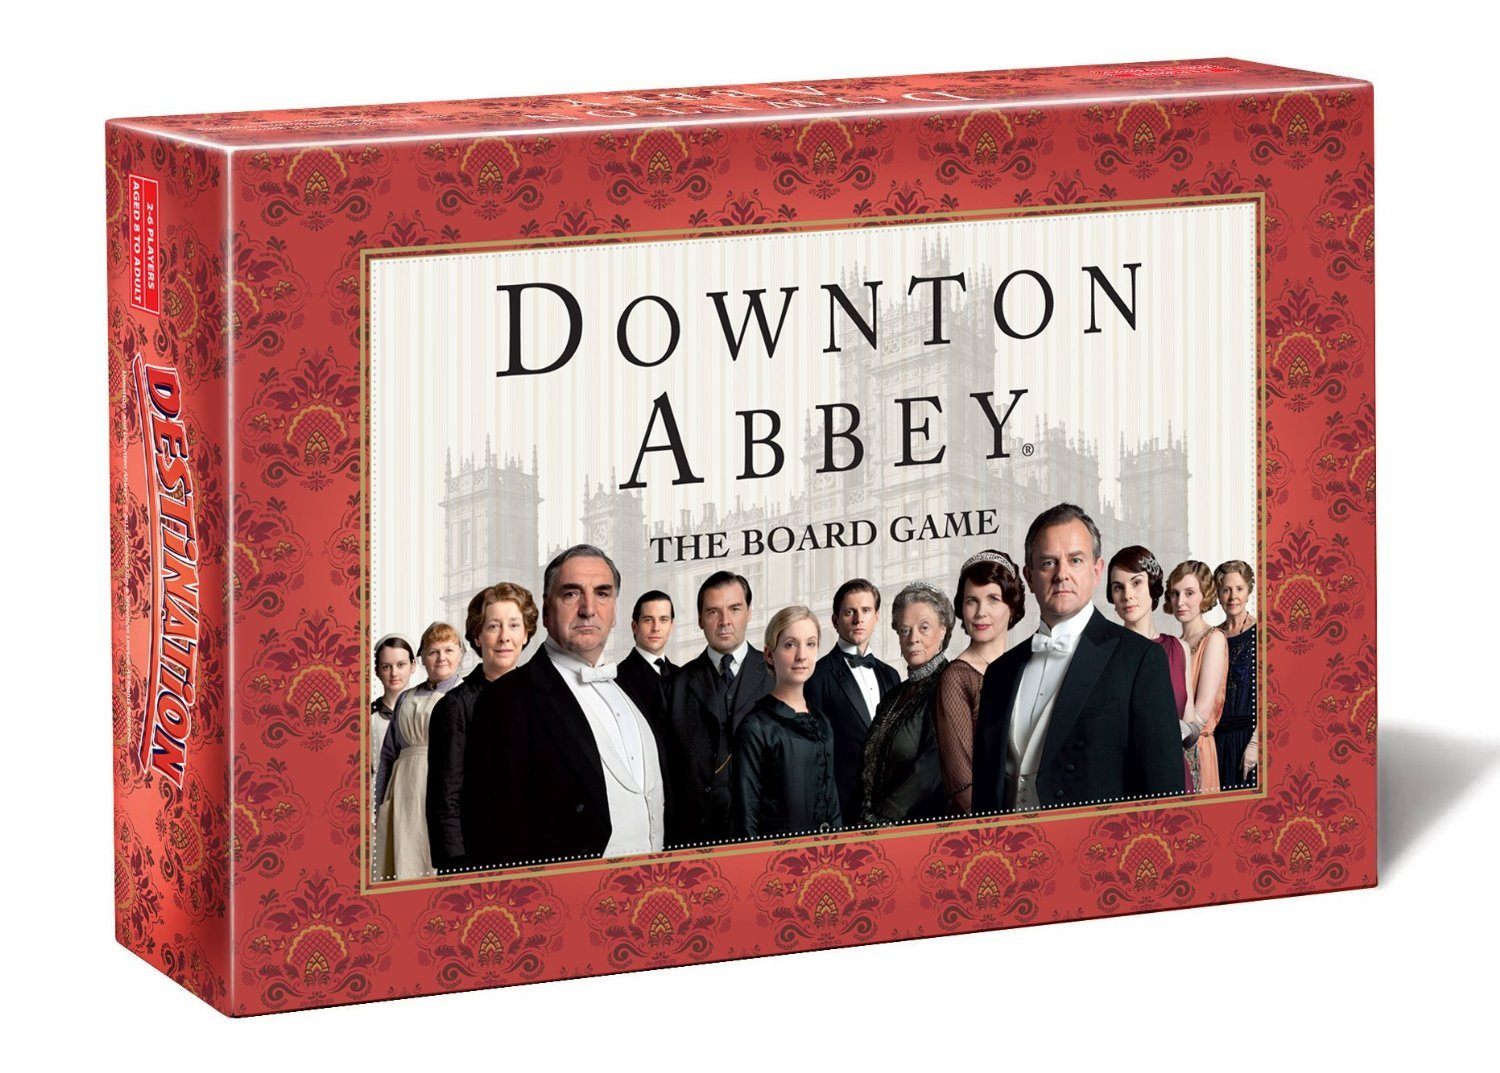 Buy Downton Abbey Board Game Now!